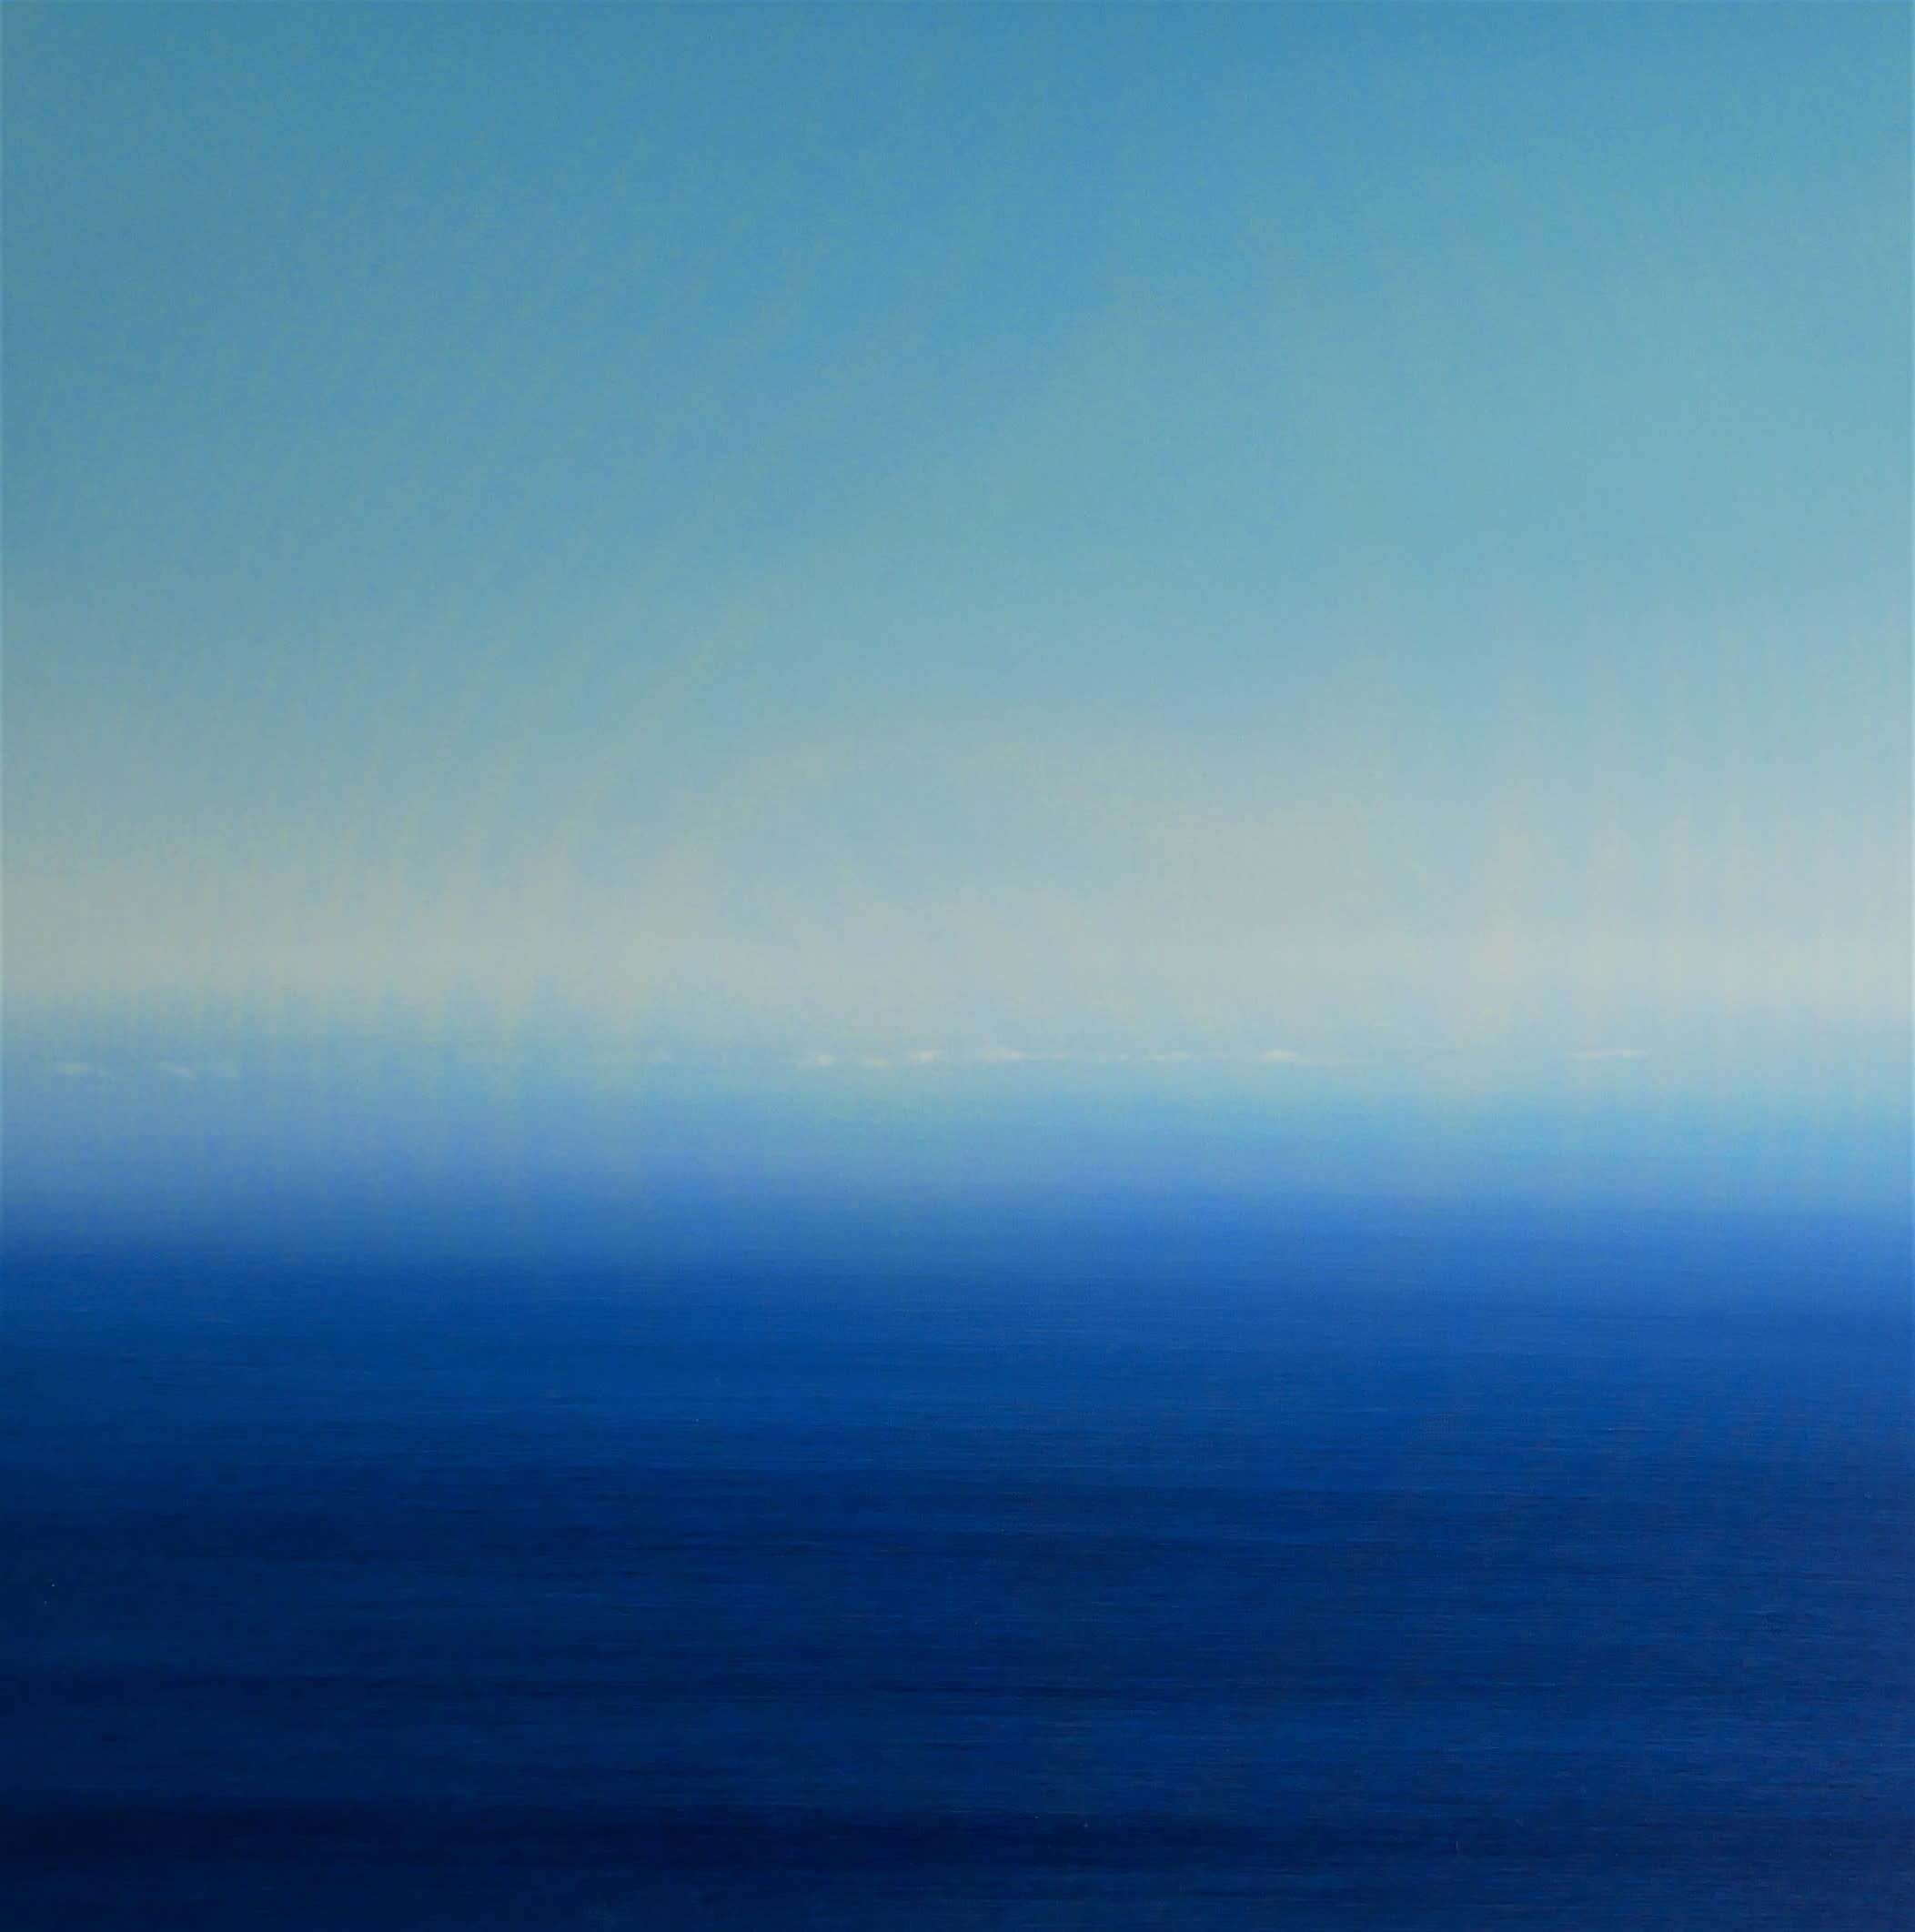 "<span class=""link fancybox-details-link""><a href=""/artists/78-martyn-perryman/works/7375-martyn-perryman-summer-skies-st-ives-2020/"">View Detail Page</a></span><div class=""artist""><strong>Martyn Perryman</strong></div> <div class=""title""><em>Summer Skies St Ives</em>, 2020</div> <div class=""medium"">oil on canvas</div> <div class=""dimensions"">h. 70 x w. 70 cm </div><div class=""price"">£900.00</div><div class=""copyright_line"">Ownart: £90 x 10 Months, 0% APR </div>"